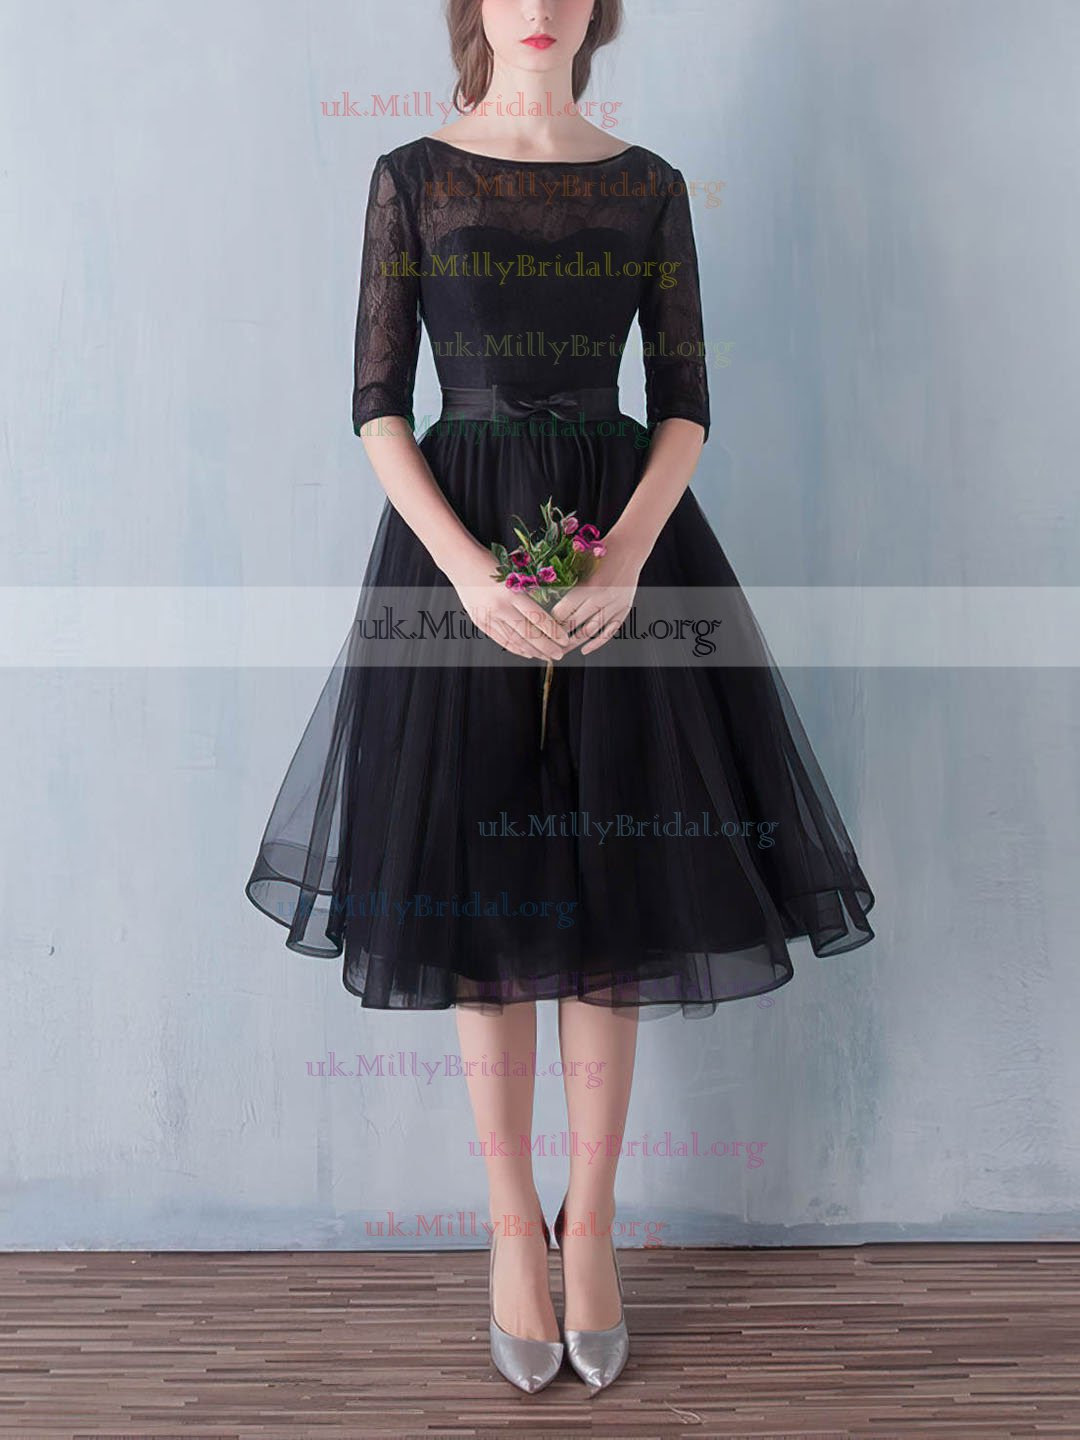 http://uk.millybridal.org/product/black-a-line-scoop-neck-lace-tulle-sashes-ribbons-knee-length-1-2-sleeve-simple-prom-dresses-ukm020102872-19290.html